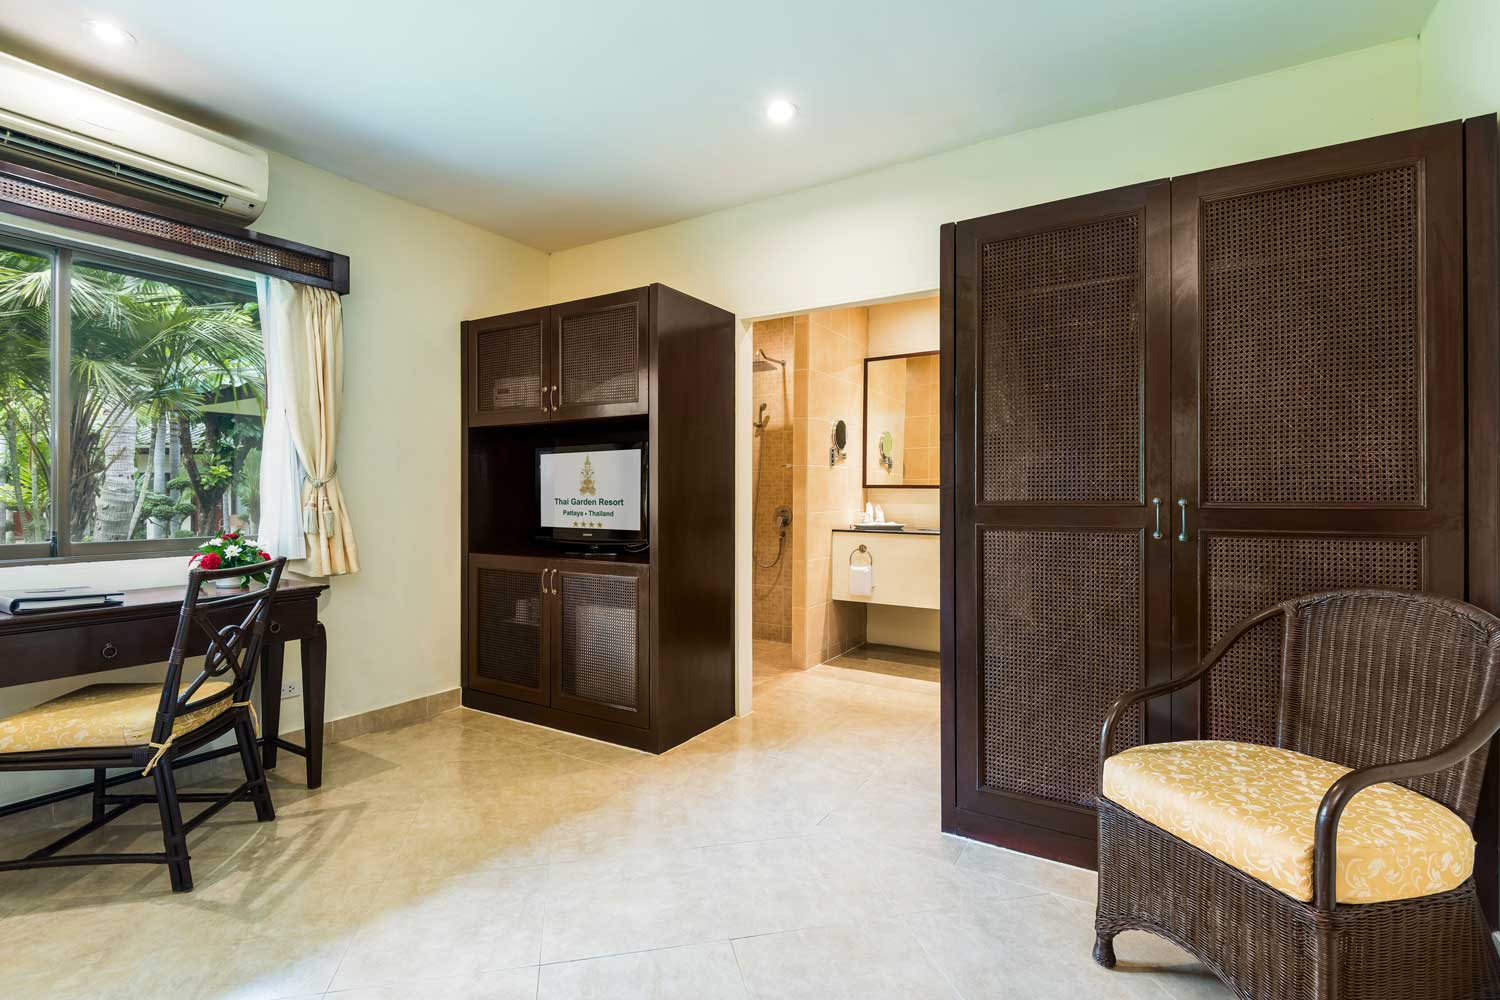 working desk and wardrobe of a superior hotel room with a garden view of the Thai Garden Resort in Pattaya, Thailand.